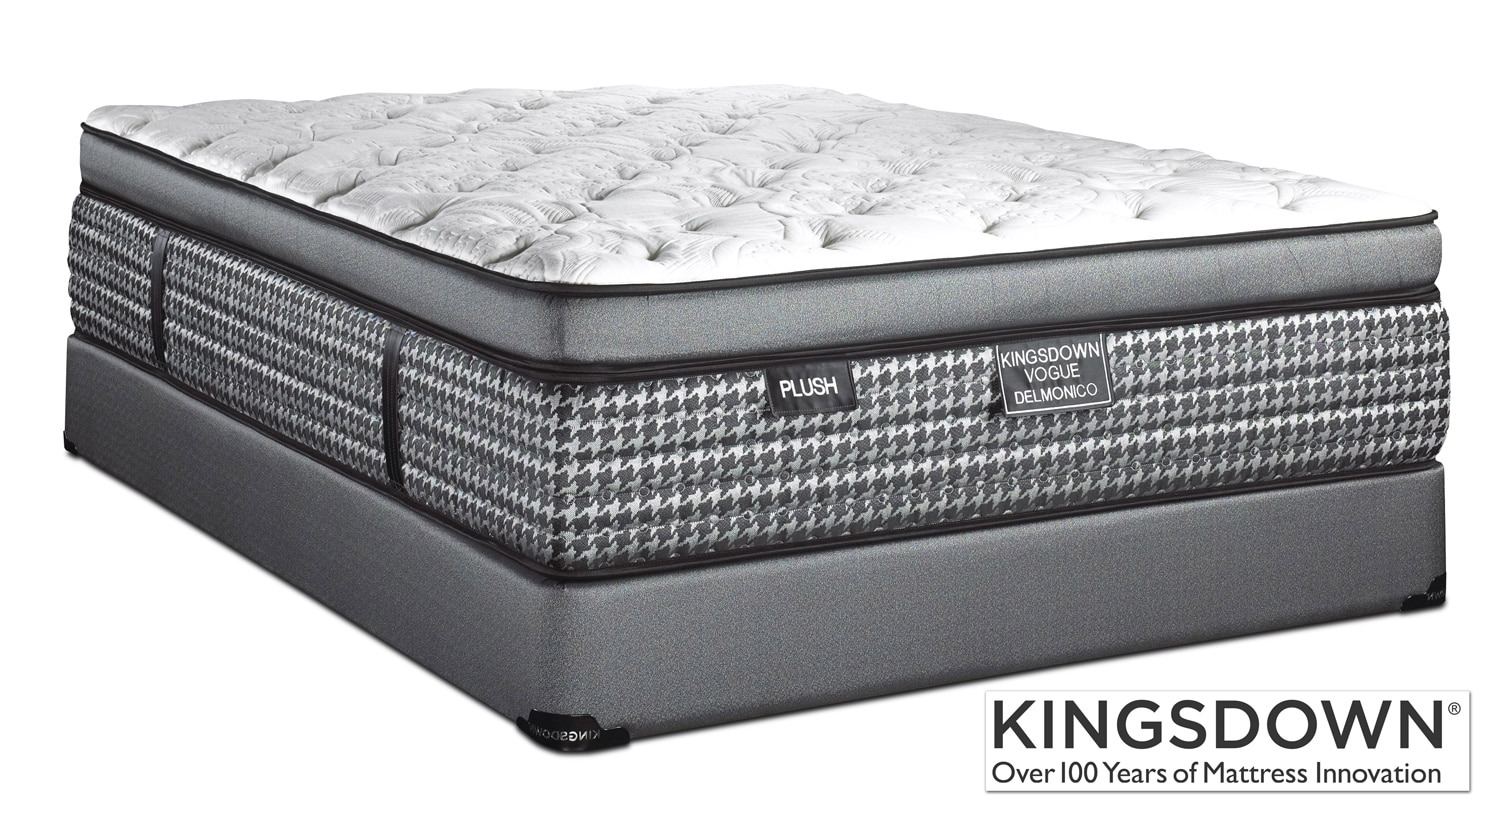 Kingsdown Delmonico Plush Twin Mattress/Boxspring Set